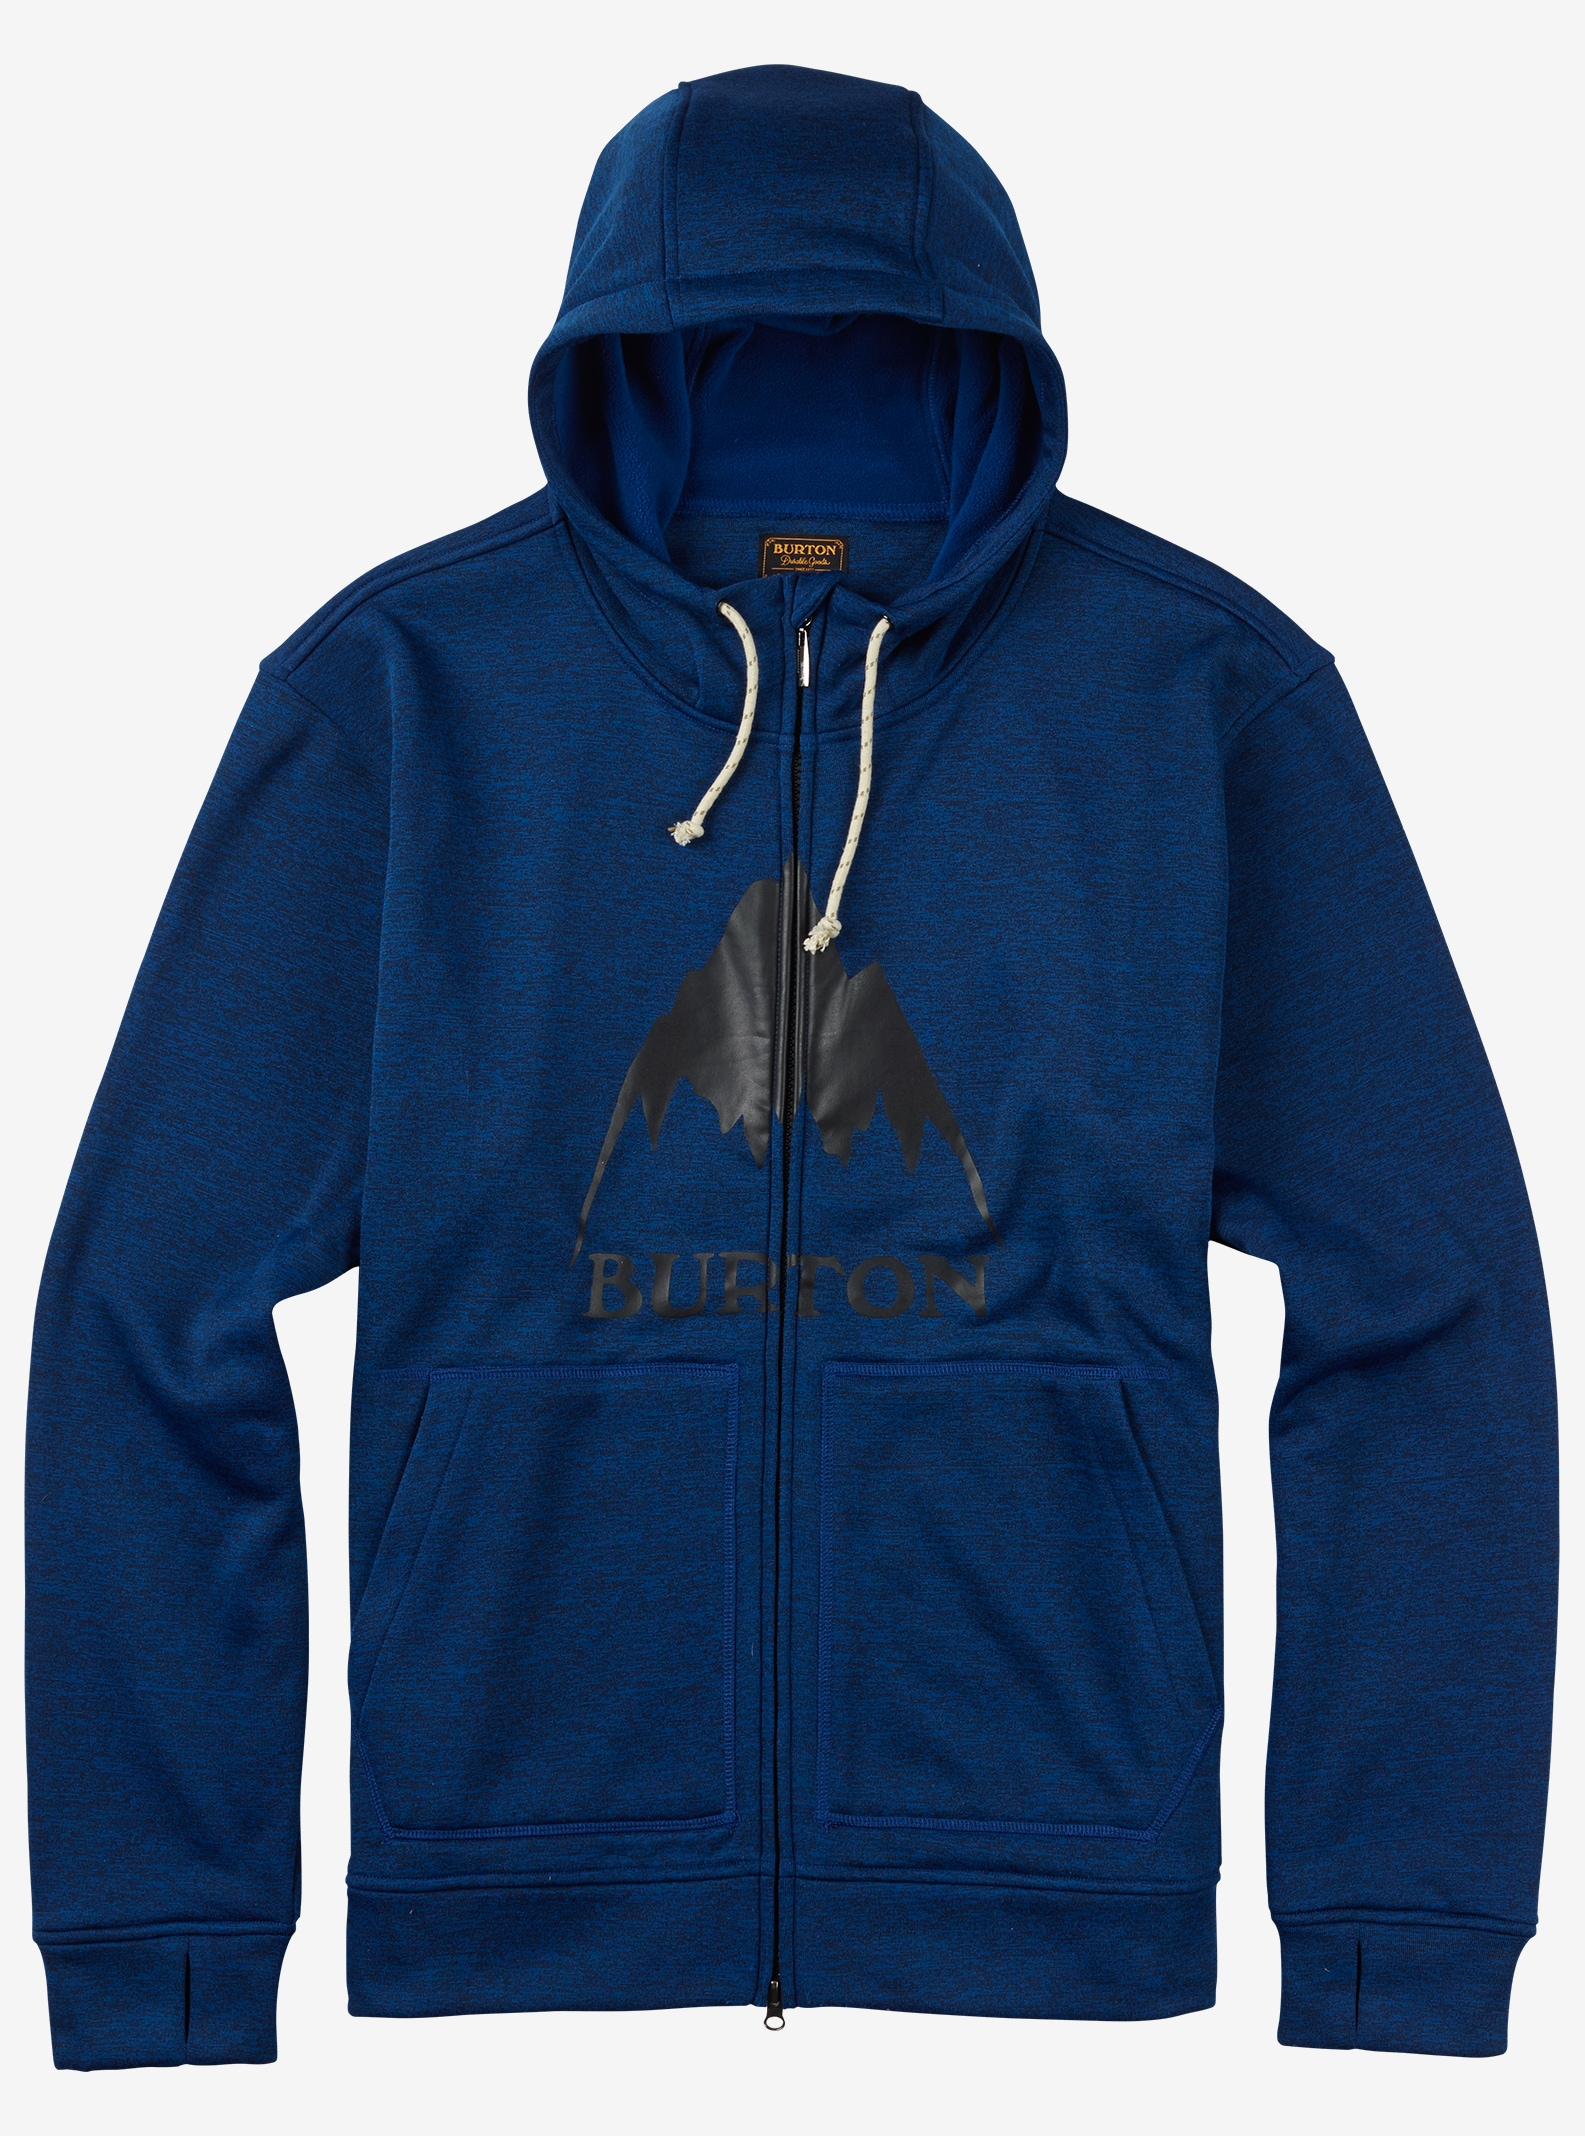 Burton Oak Full-Zip Hoodie shown in True Blue Heather